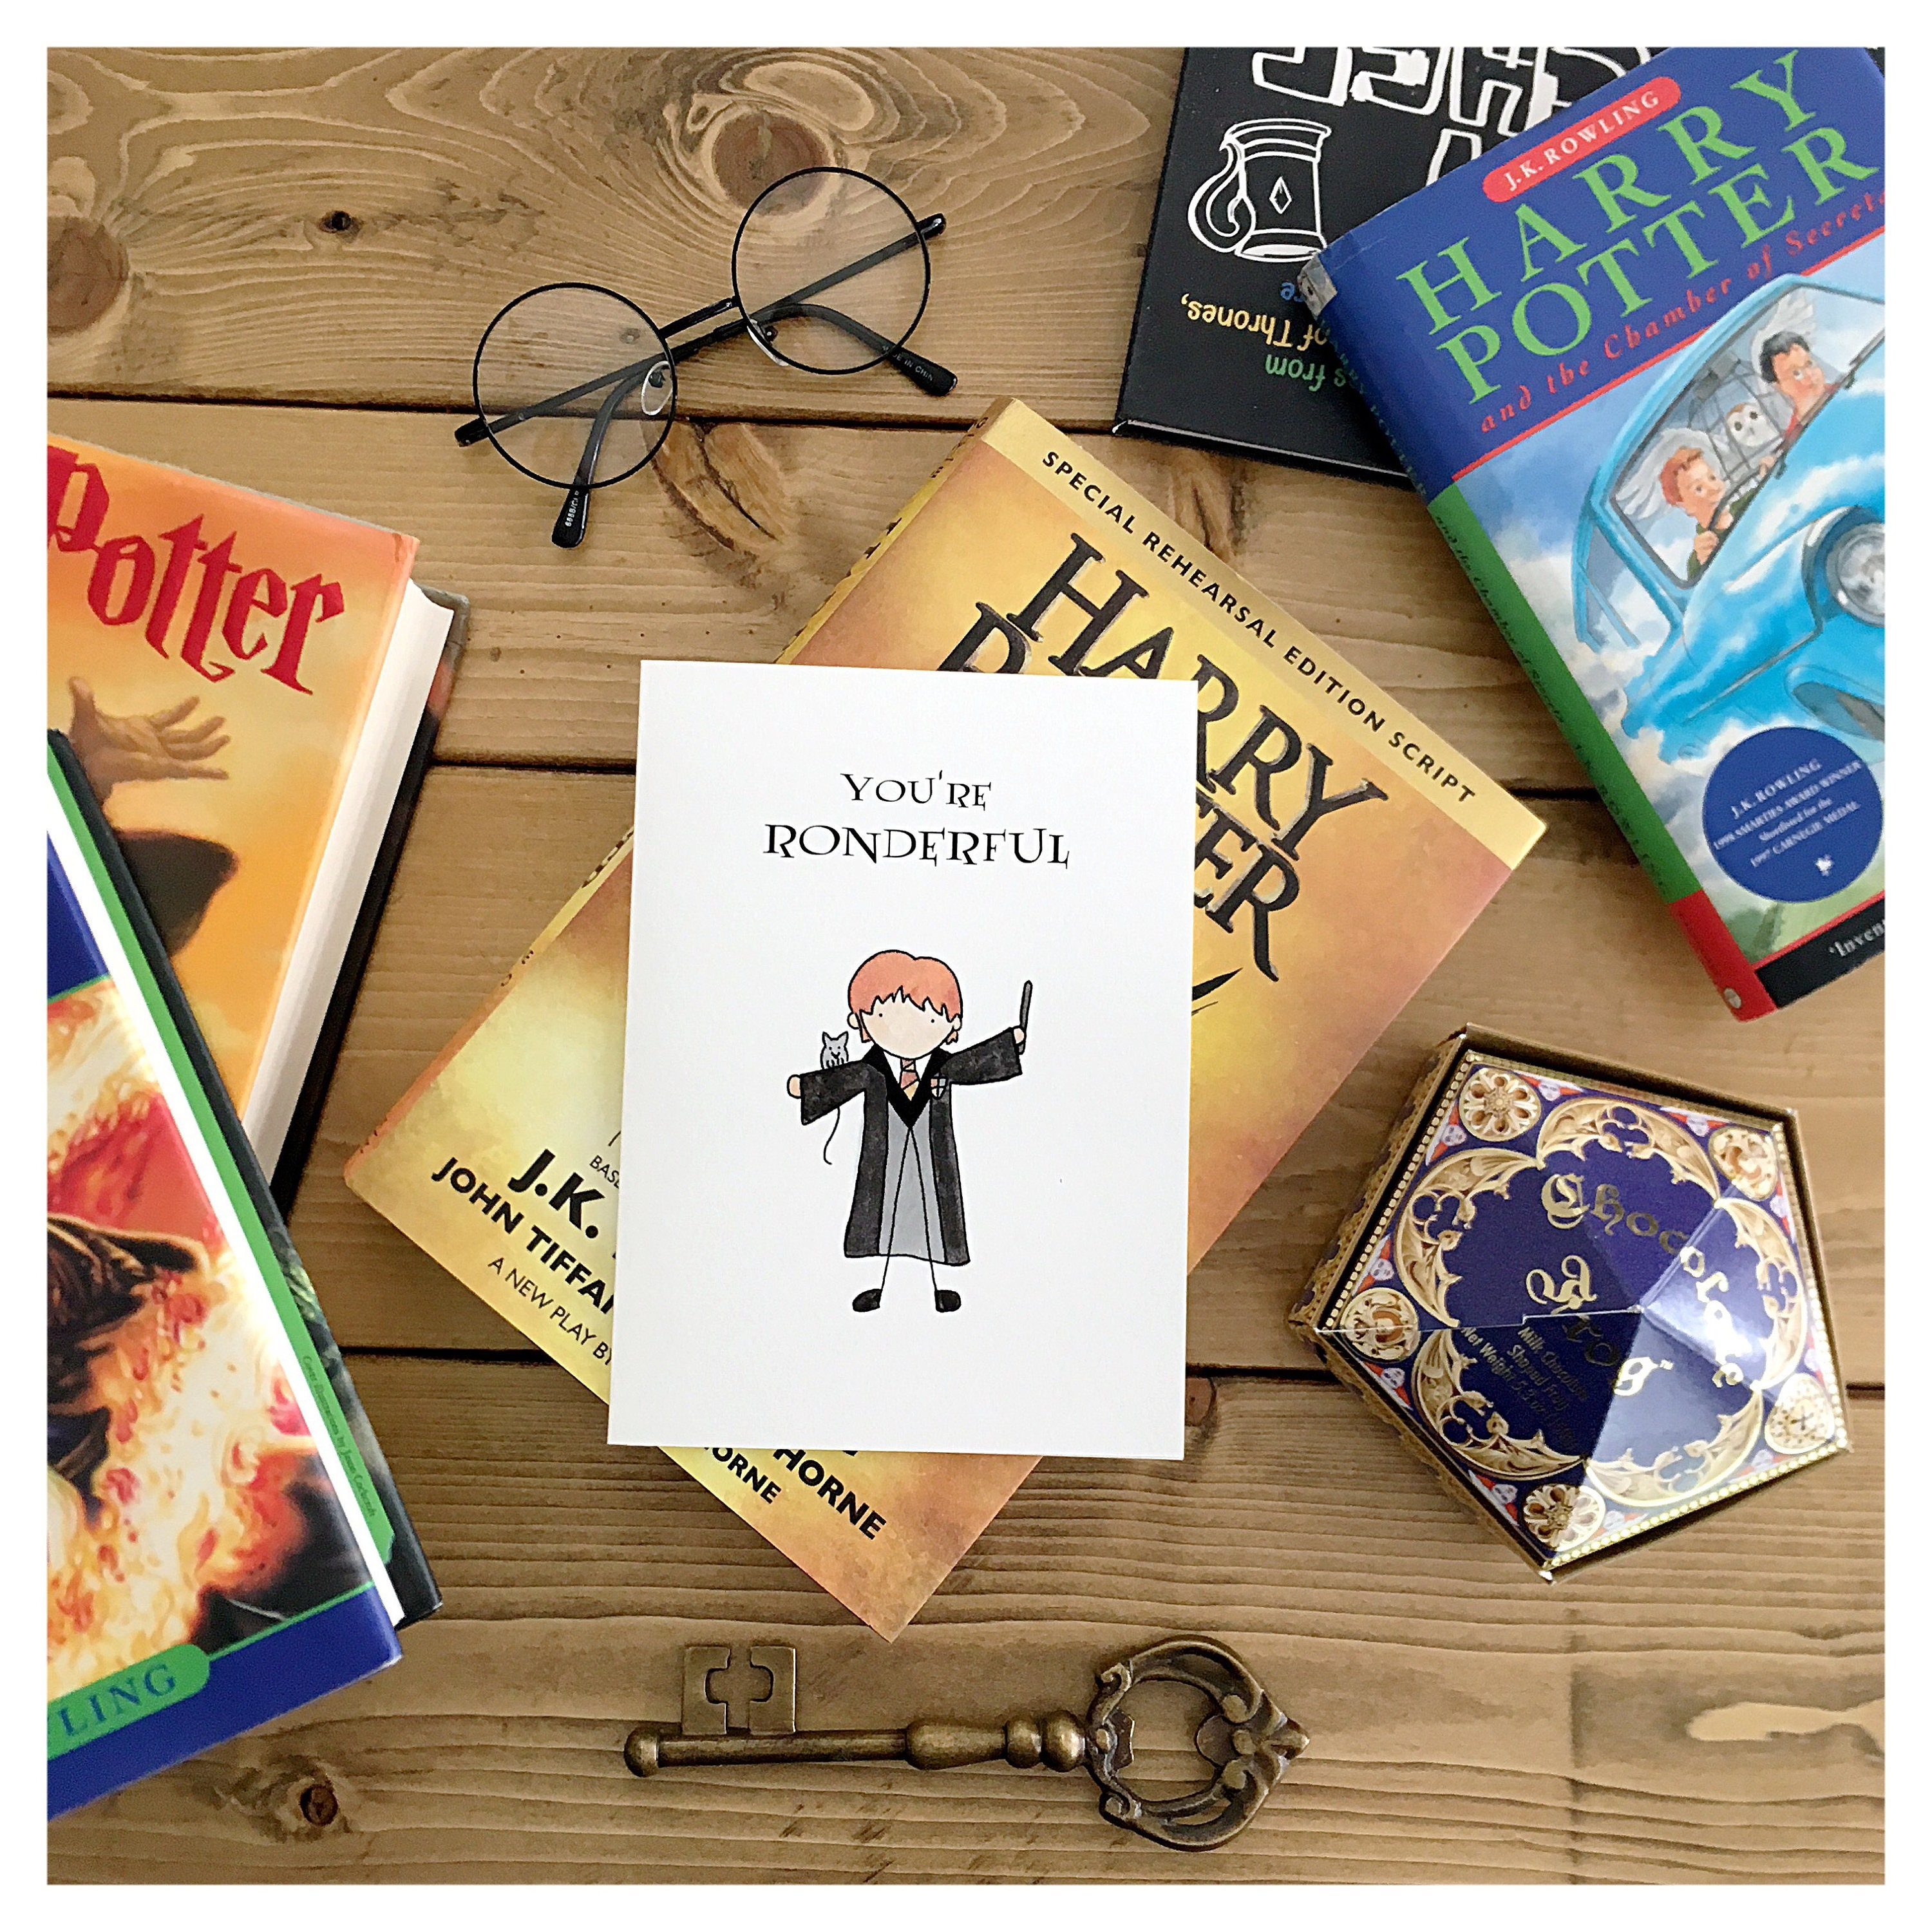 Ron card ron weasley harry potter harry potter card harry ron card ron weasley harry potter harry potter card harry potter love card harry potter valentines day card punny love card bookmarktalkfo Image collections